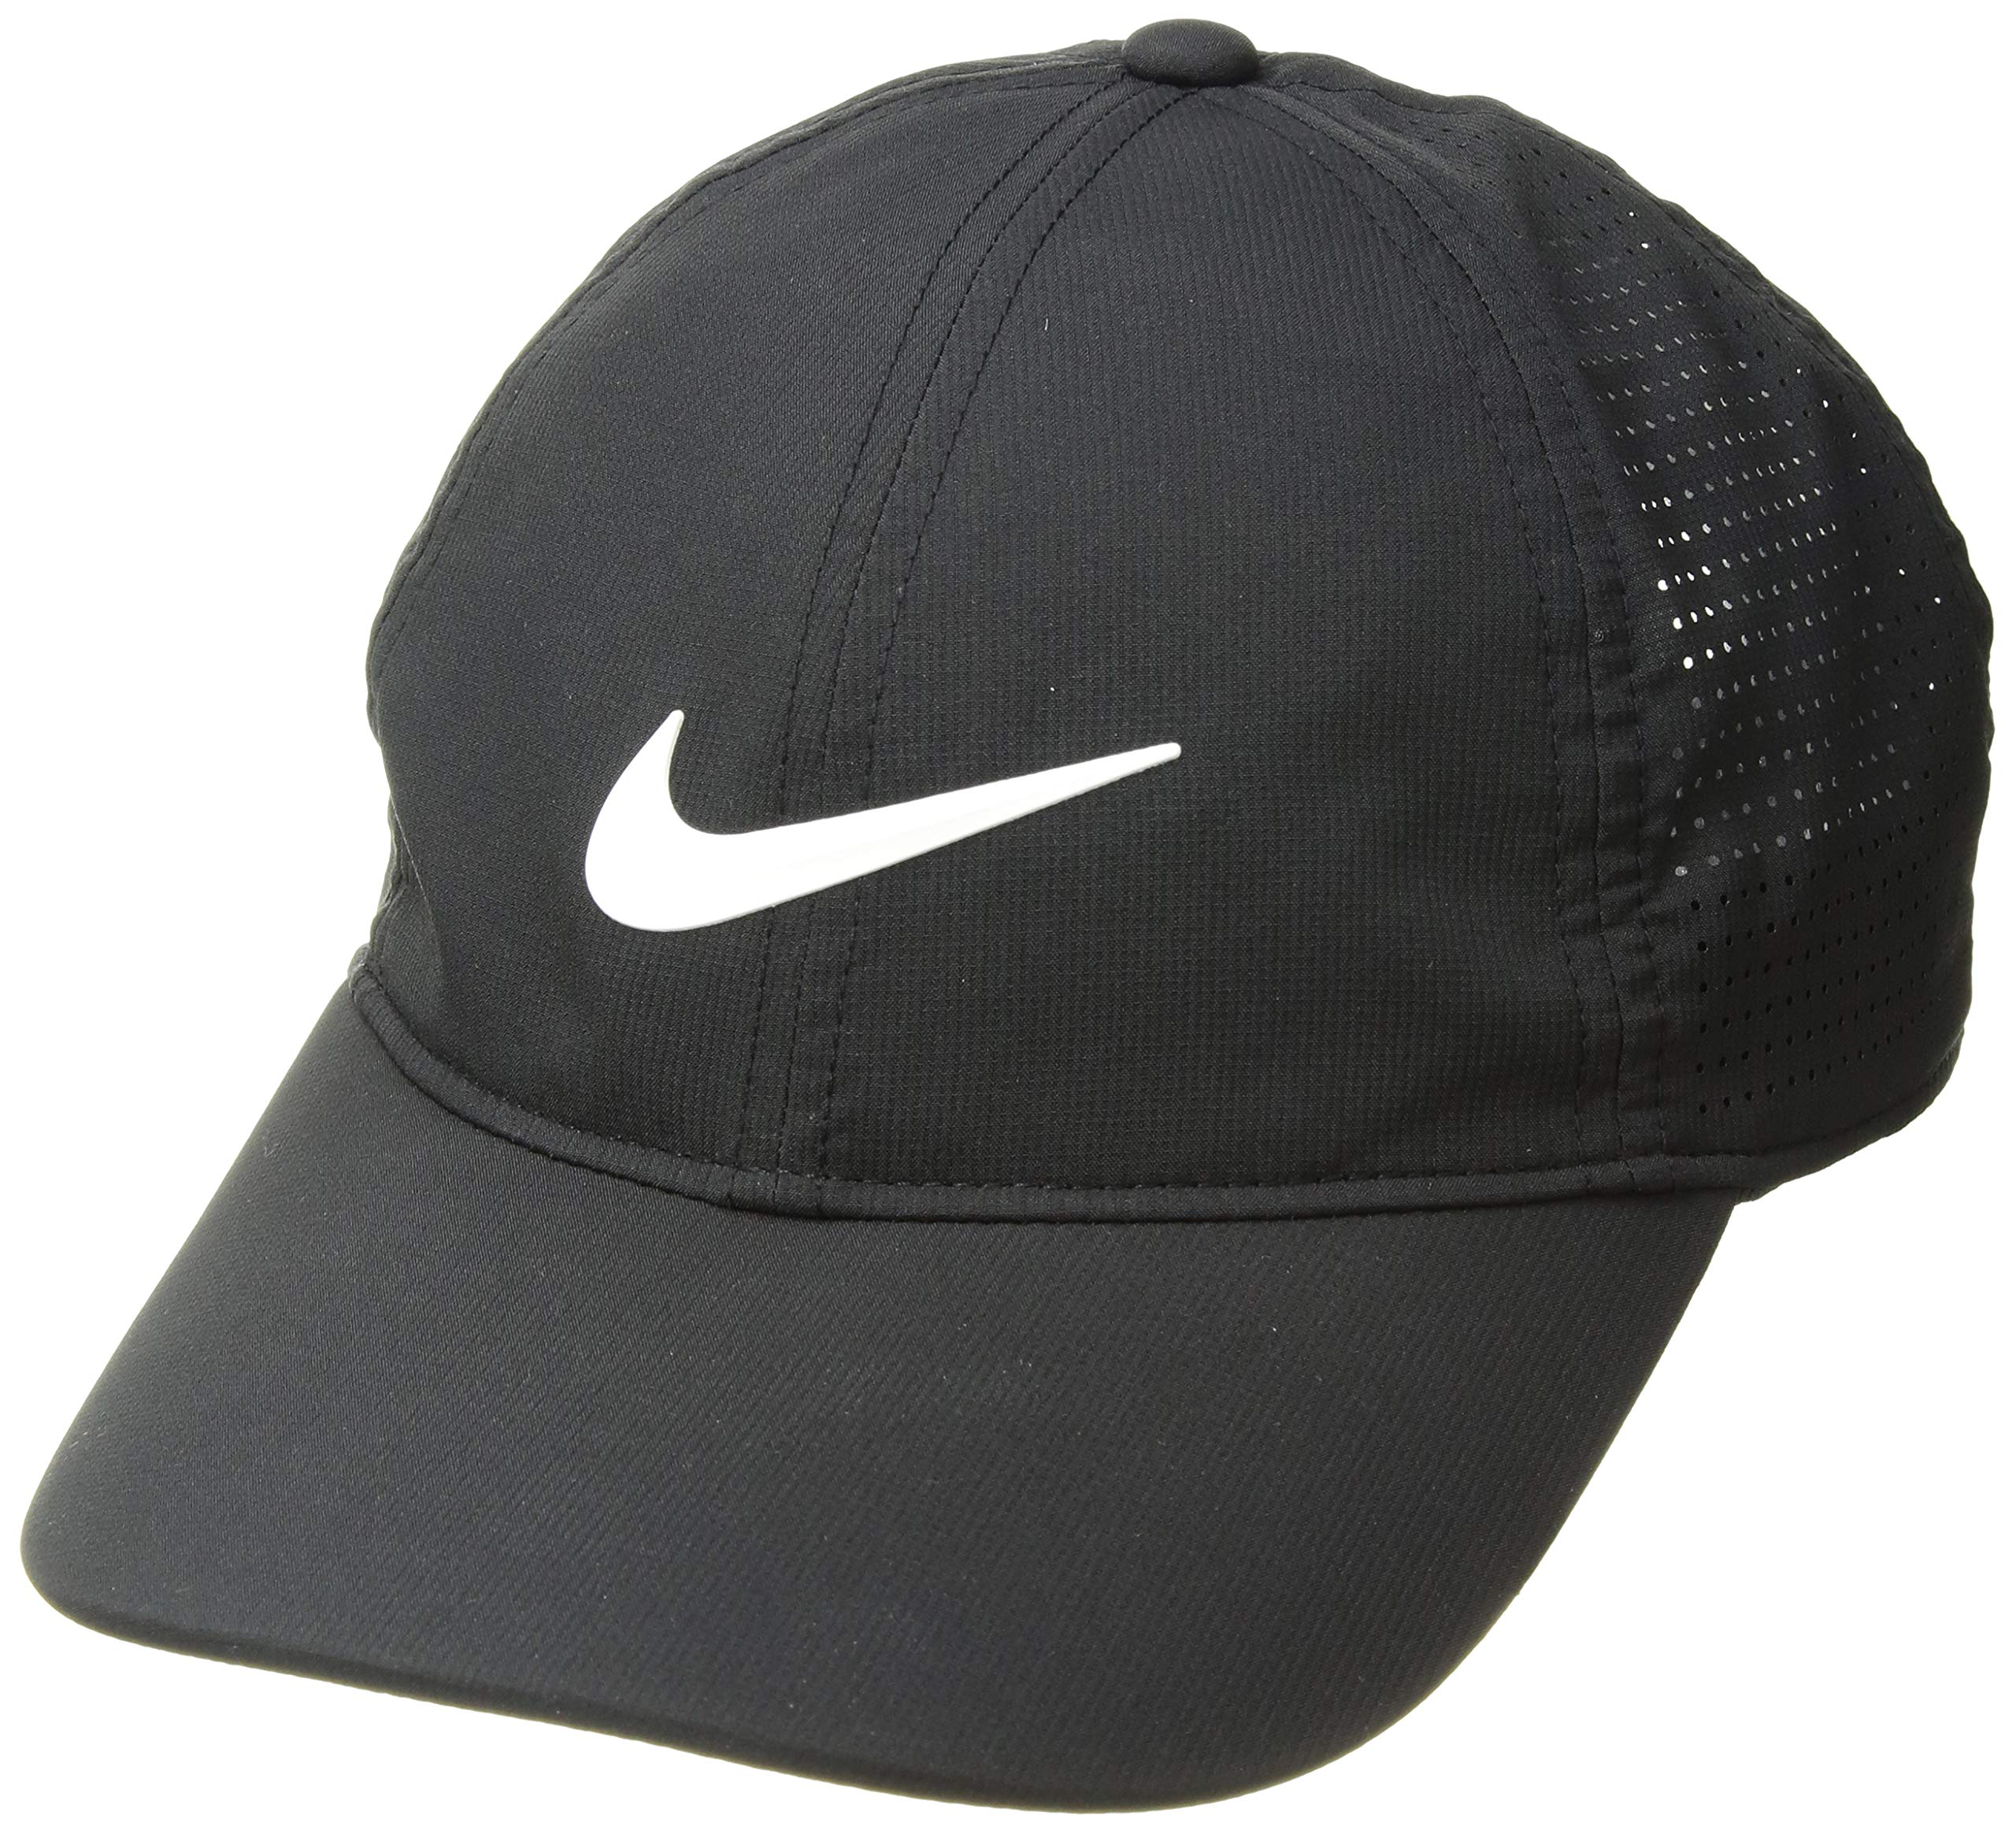 15664661334 NIKE Women s AeroBill Legacy 91 Perforated Cap